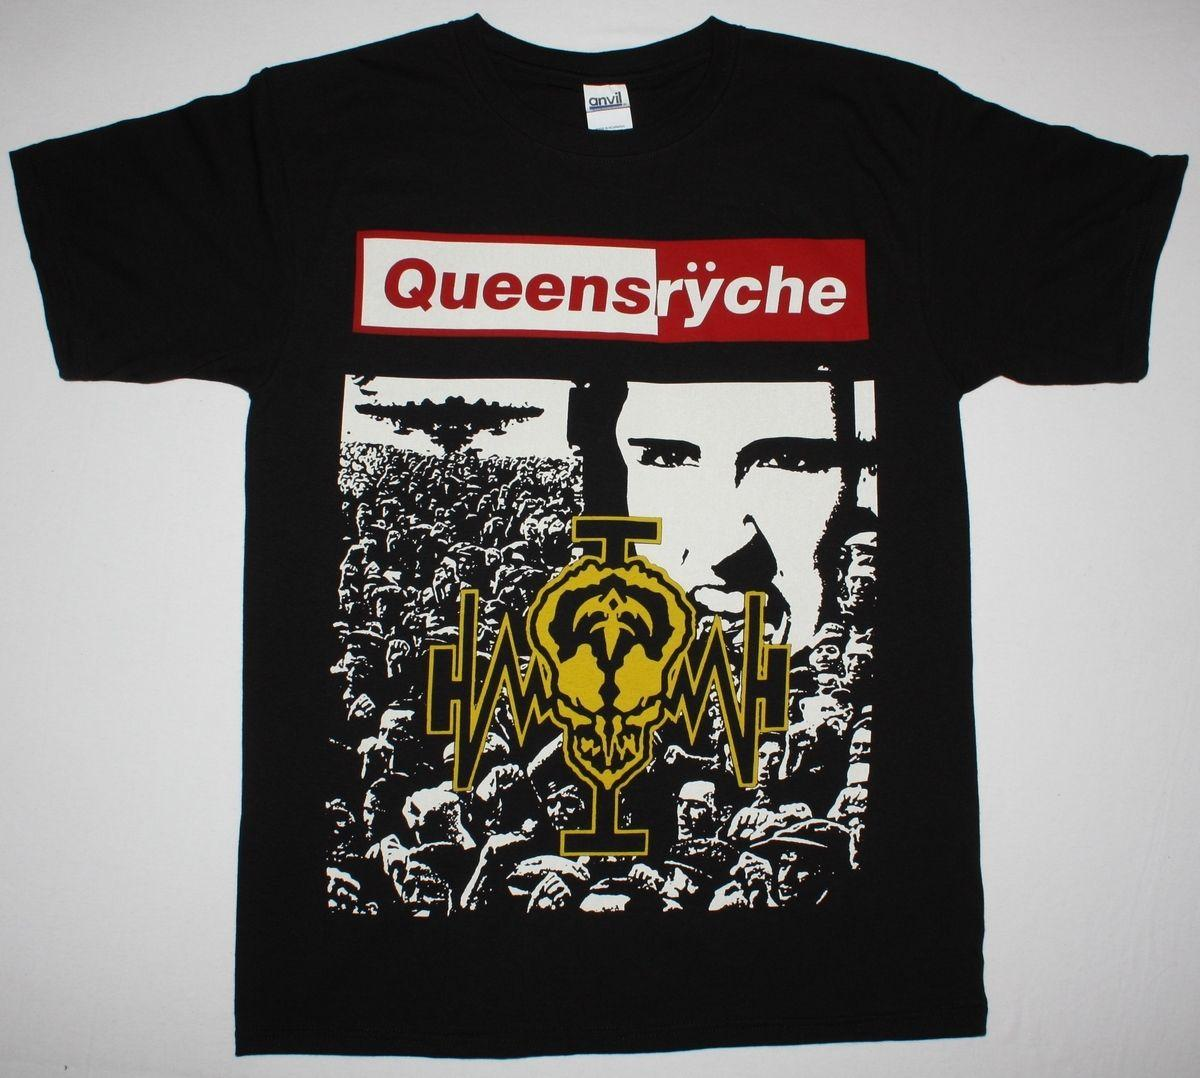 Queensryche Operation Mindcrime'88 Progressive Metal Savatage New Black T-shirt Hot Sell 2018 Fashion T Shirt Men Loose Size